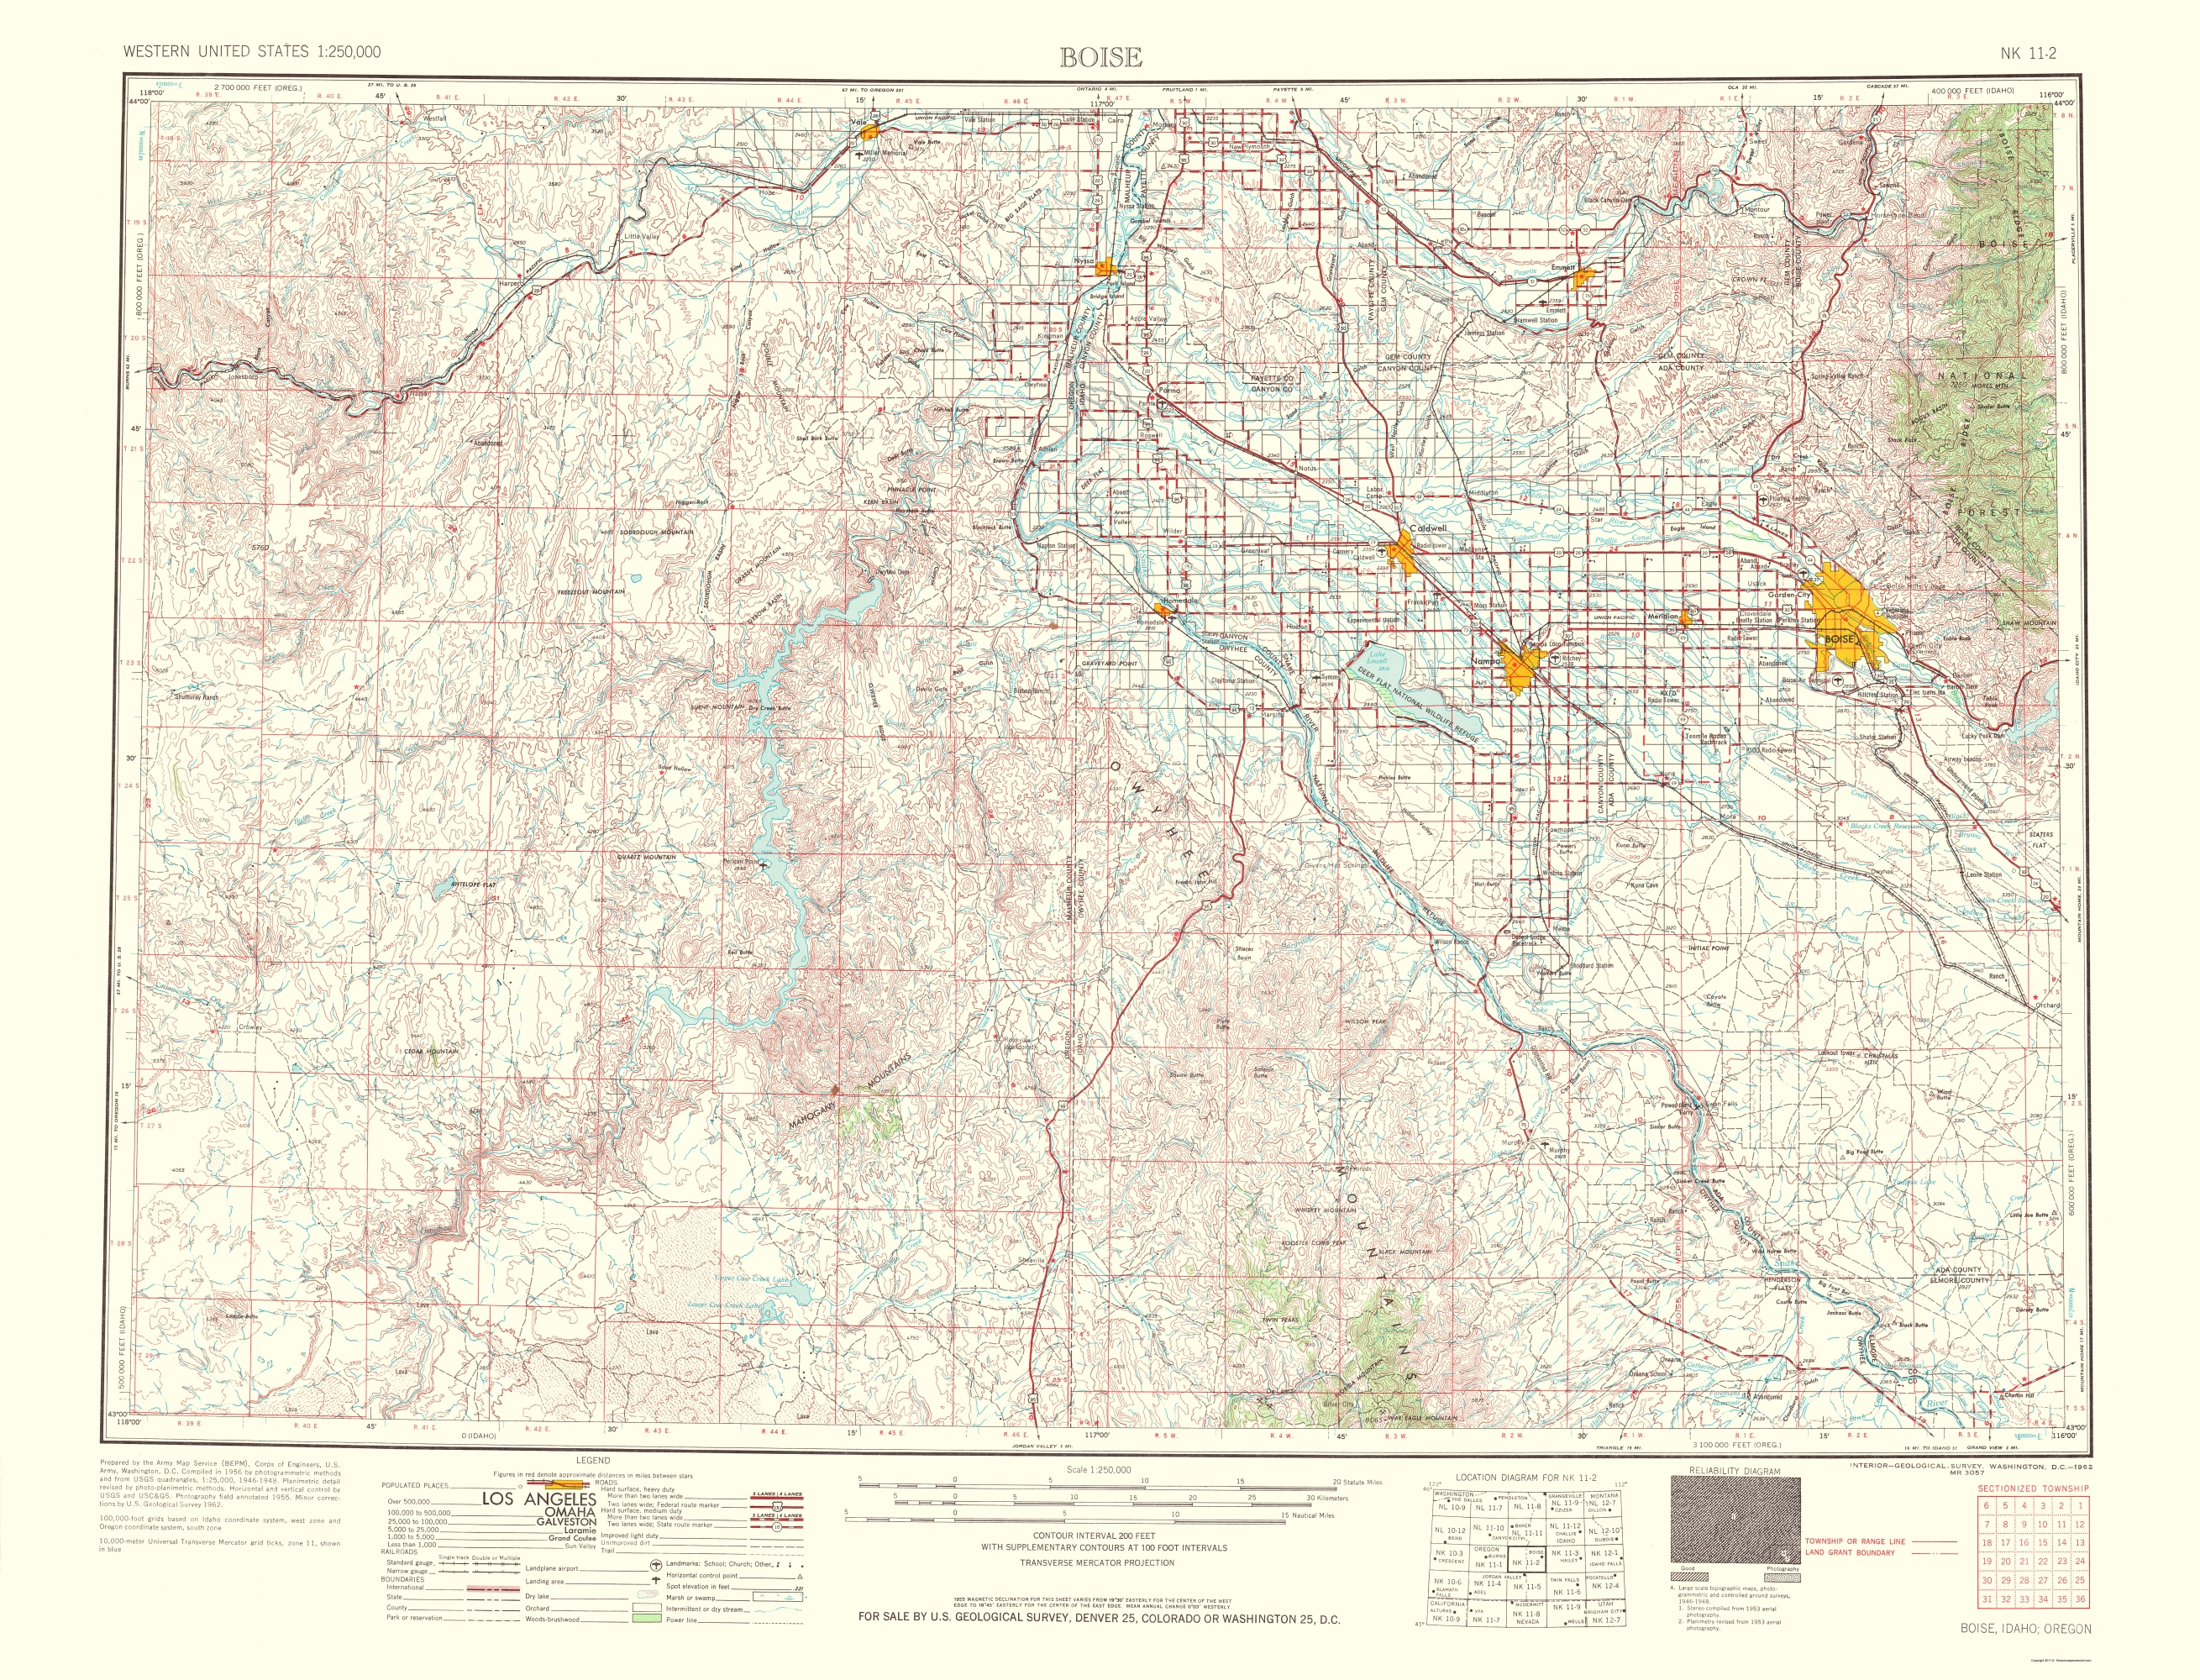 Old Topographical Map - Boise Idaho, Oregon 1962